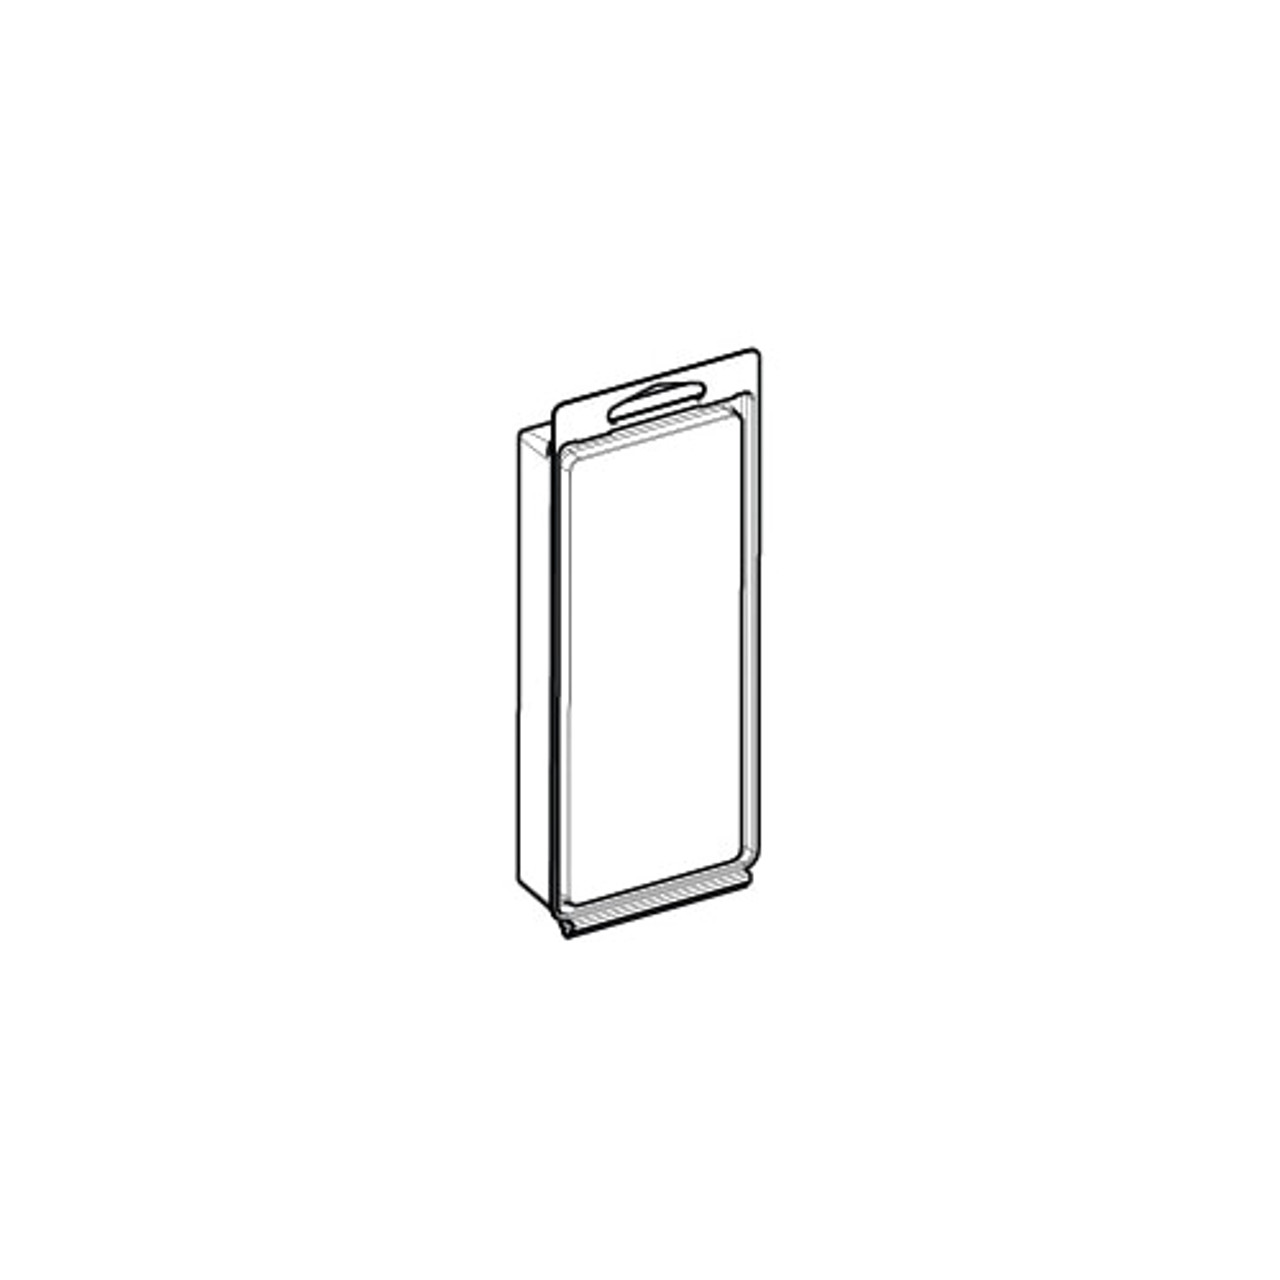 322289 - Stock Clamshell Packaging